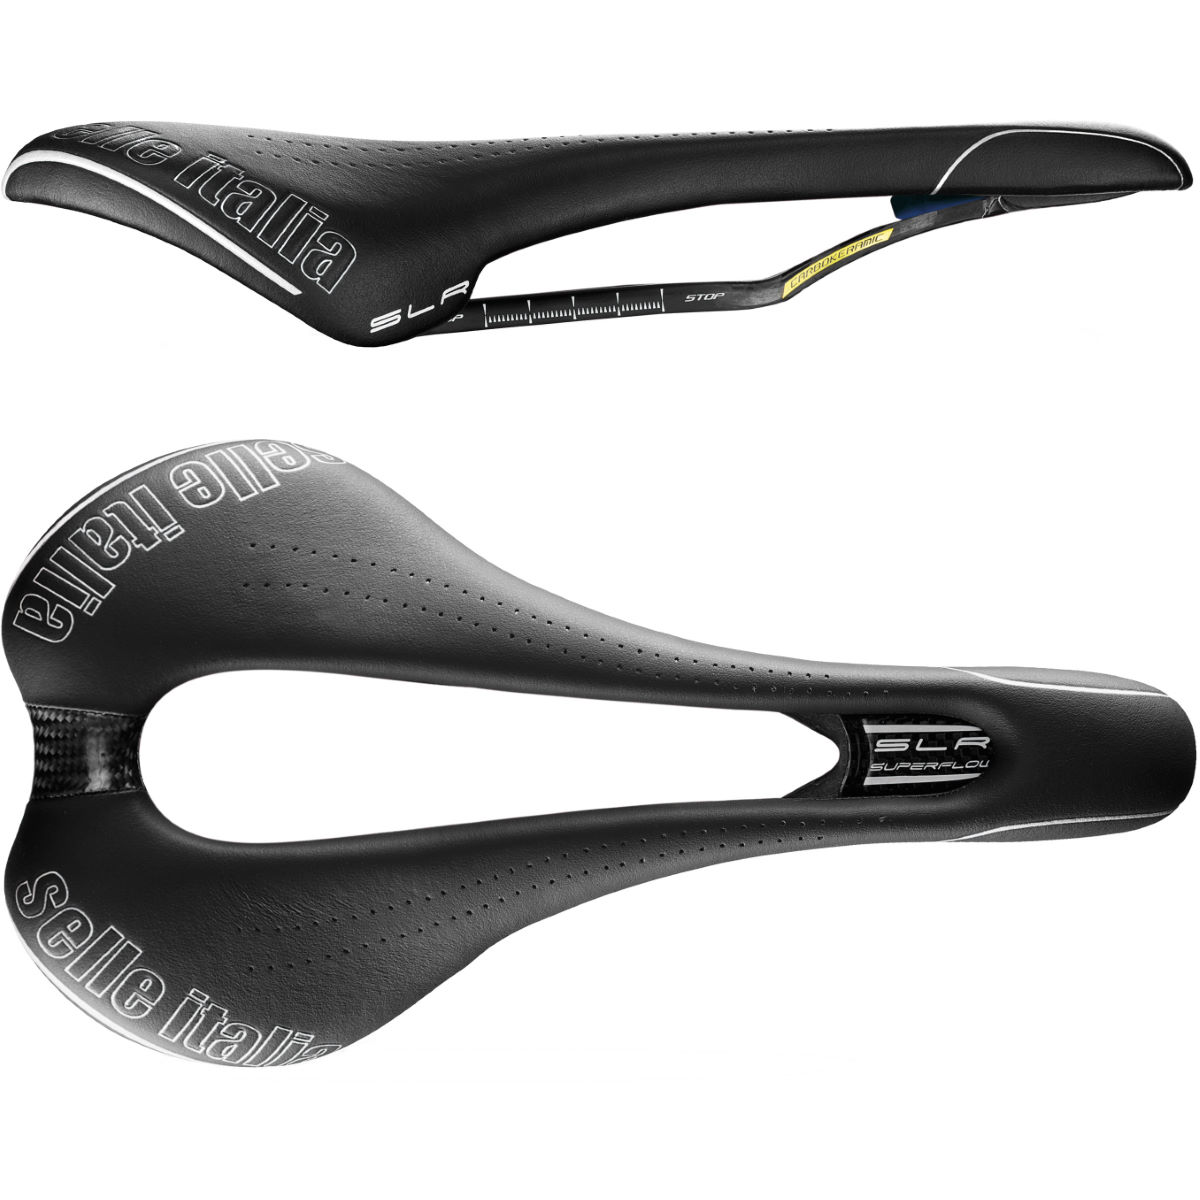 Selle Selle Italia SLR Kit Carbonio Superflow - L3 BLACK